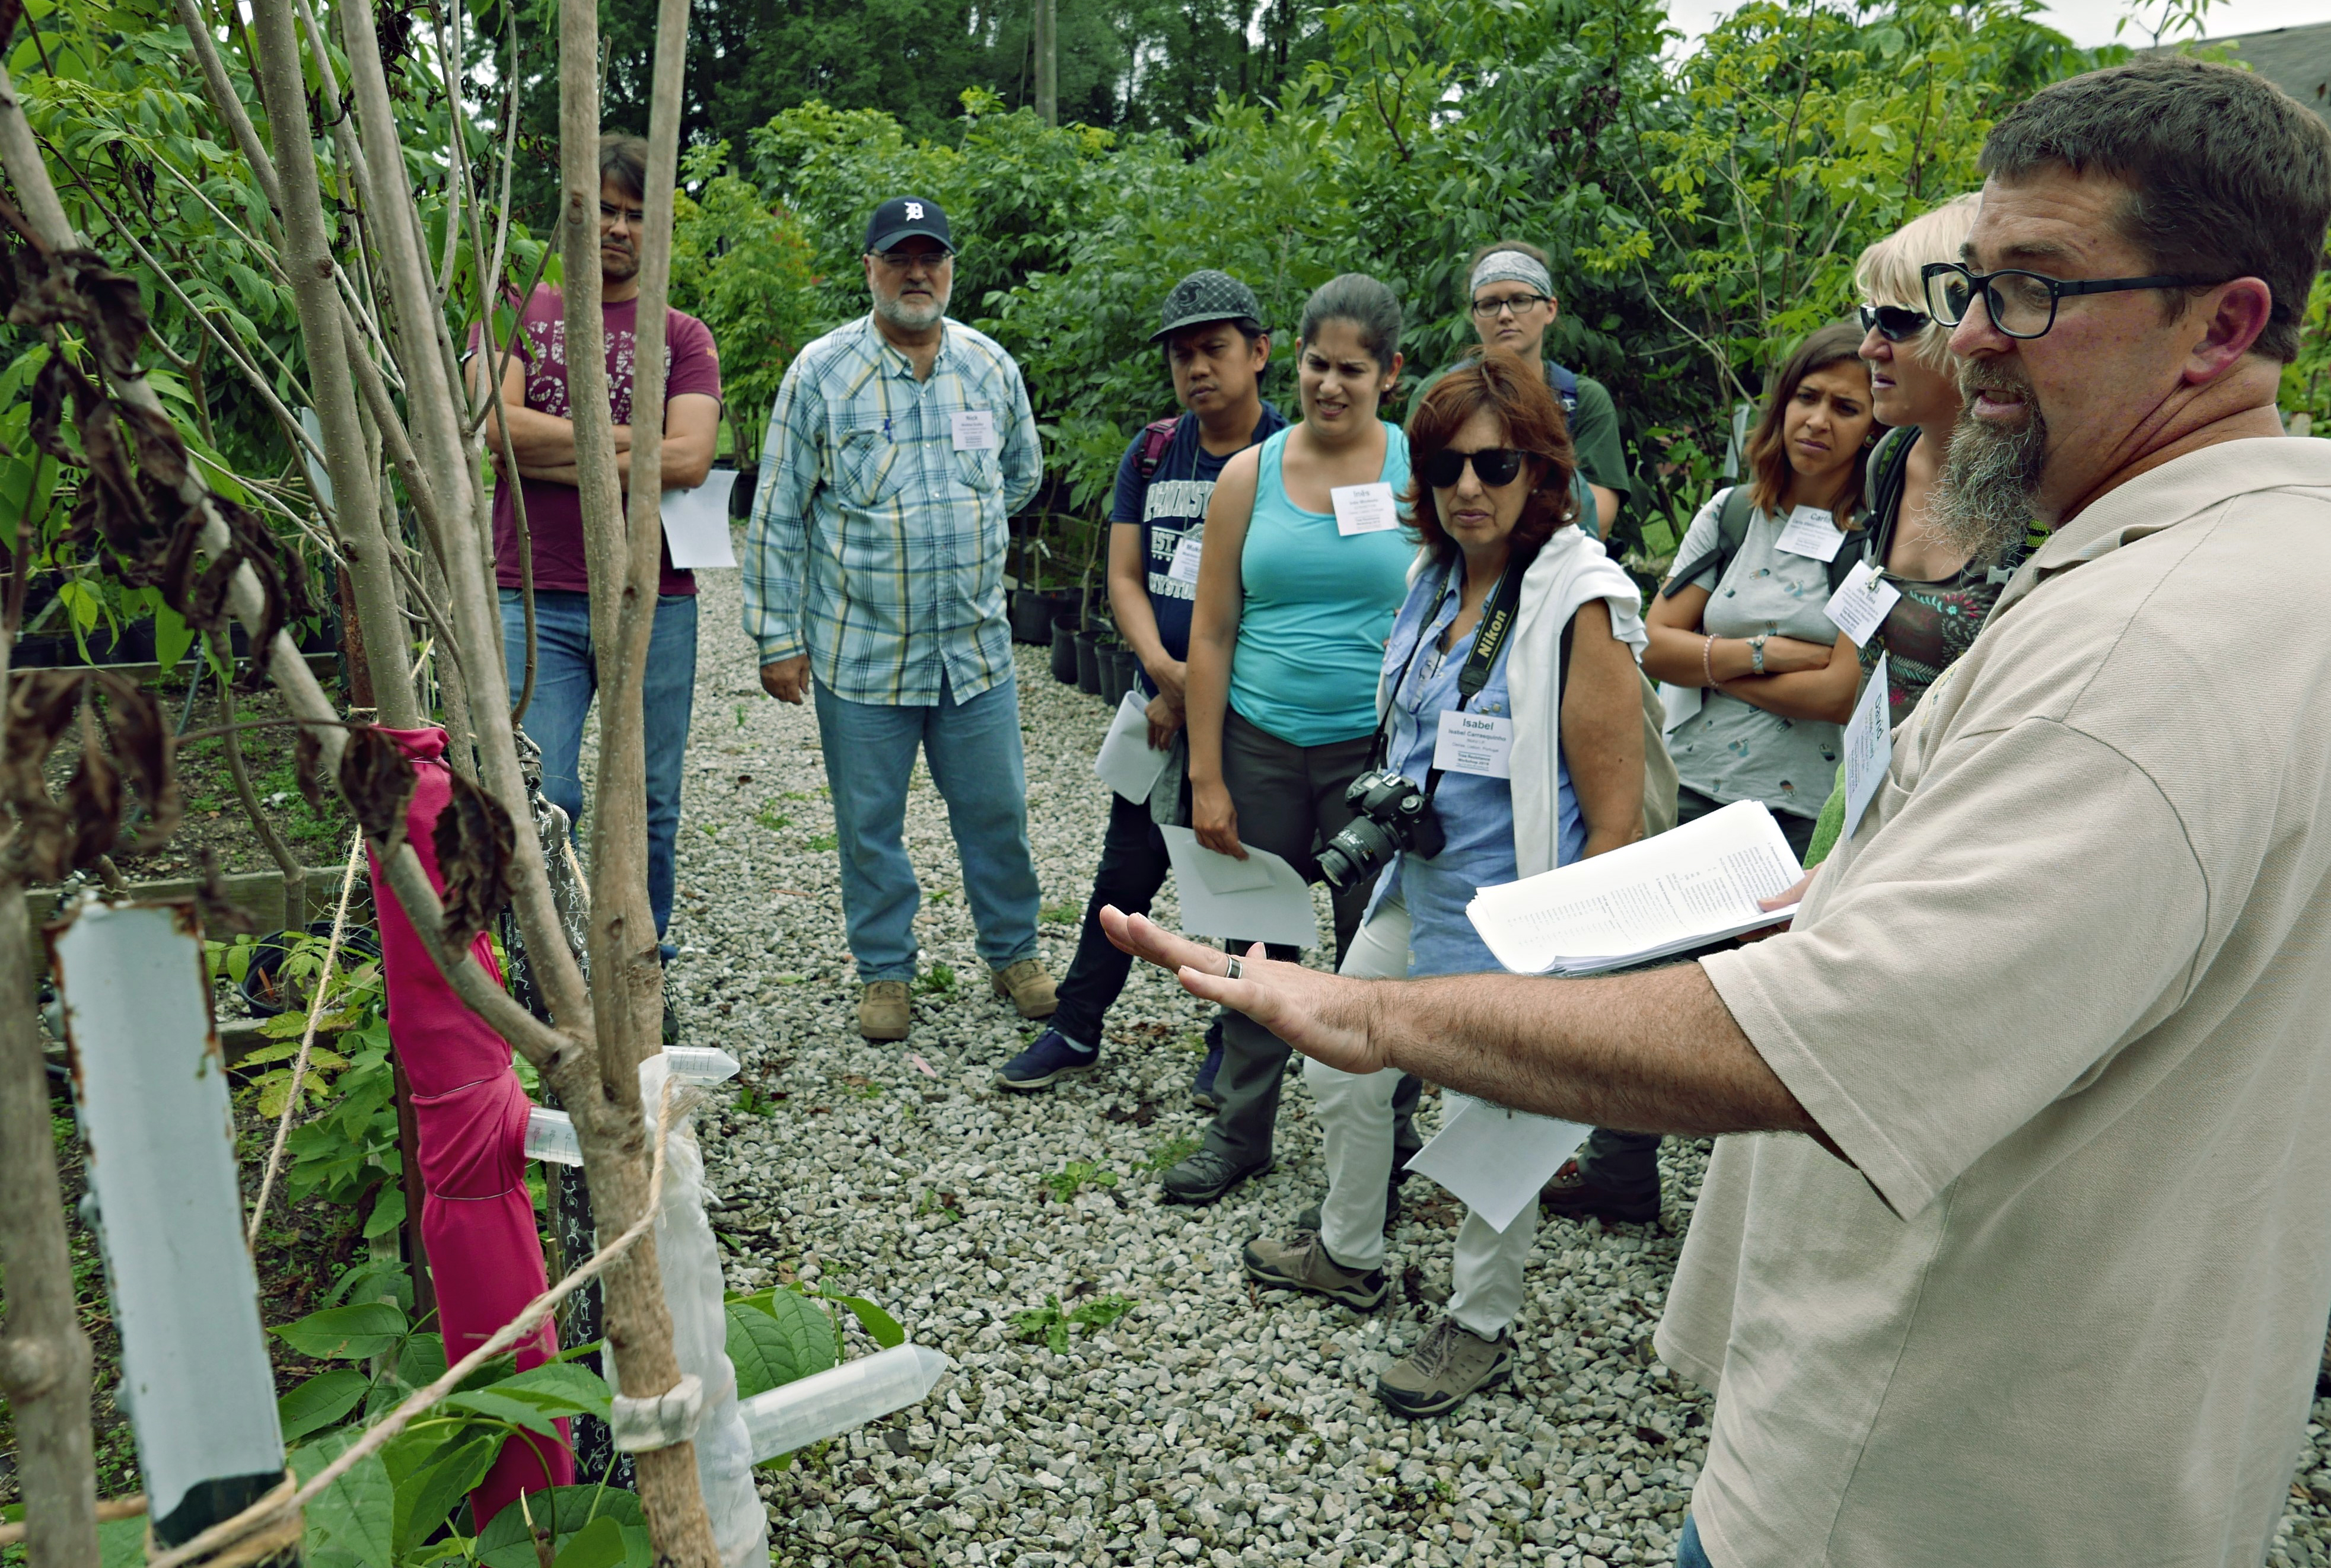 David Carey and workshop participants stand in tree breeding area.